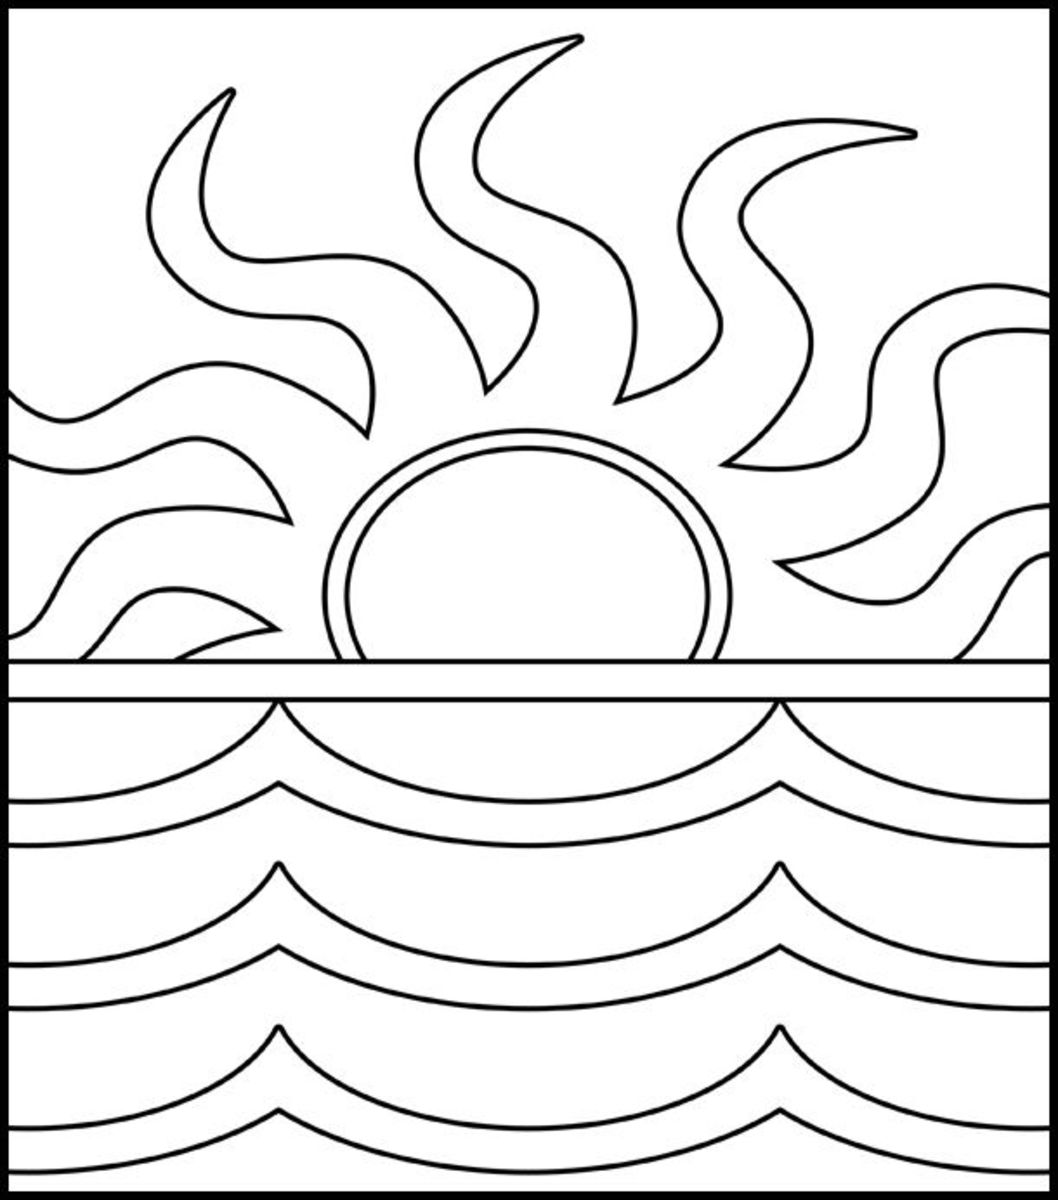 coloring image sunset sunset drawing black and white at getdrawings free download coloring image sunset